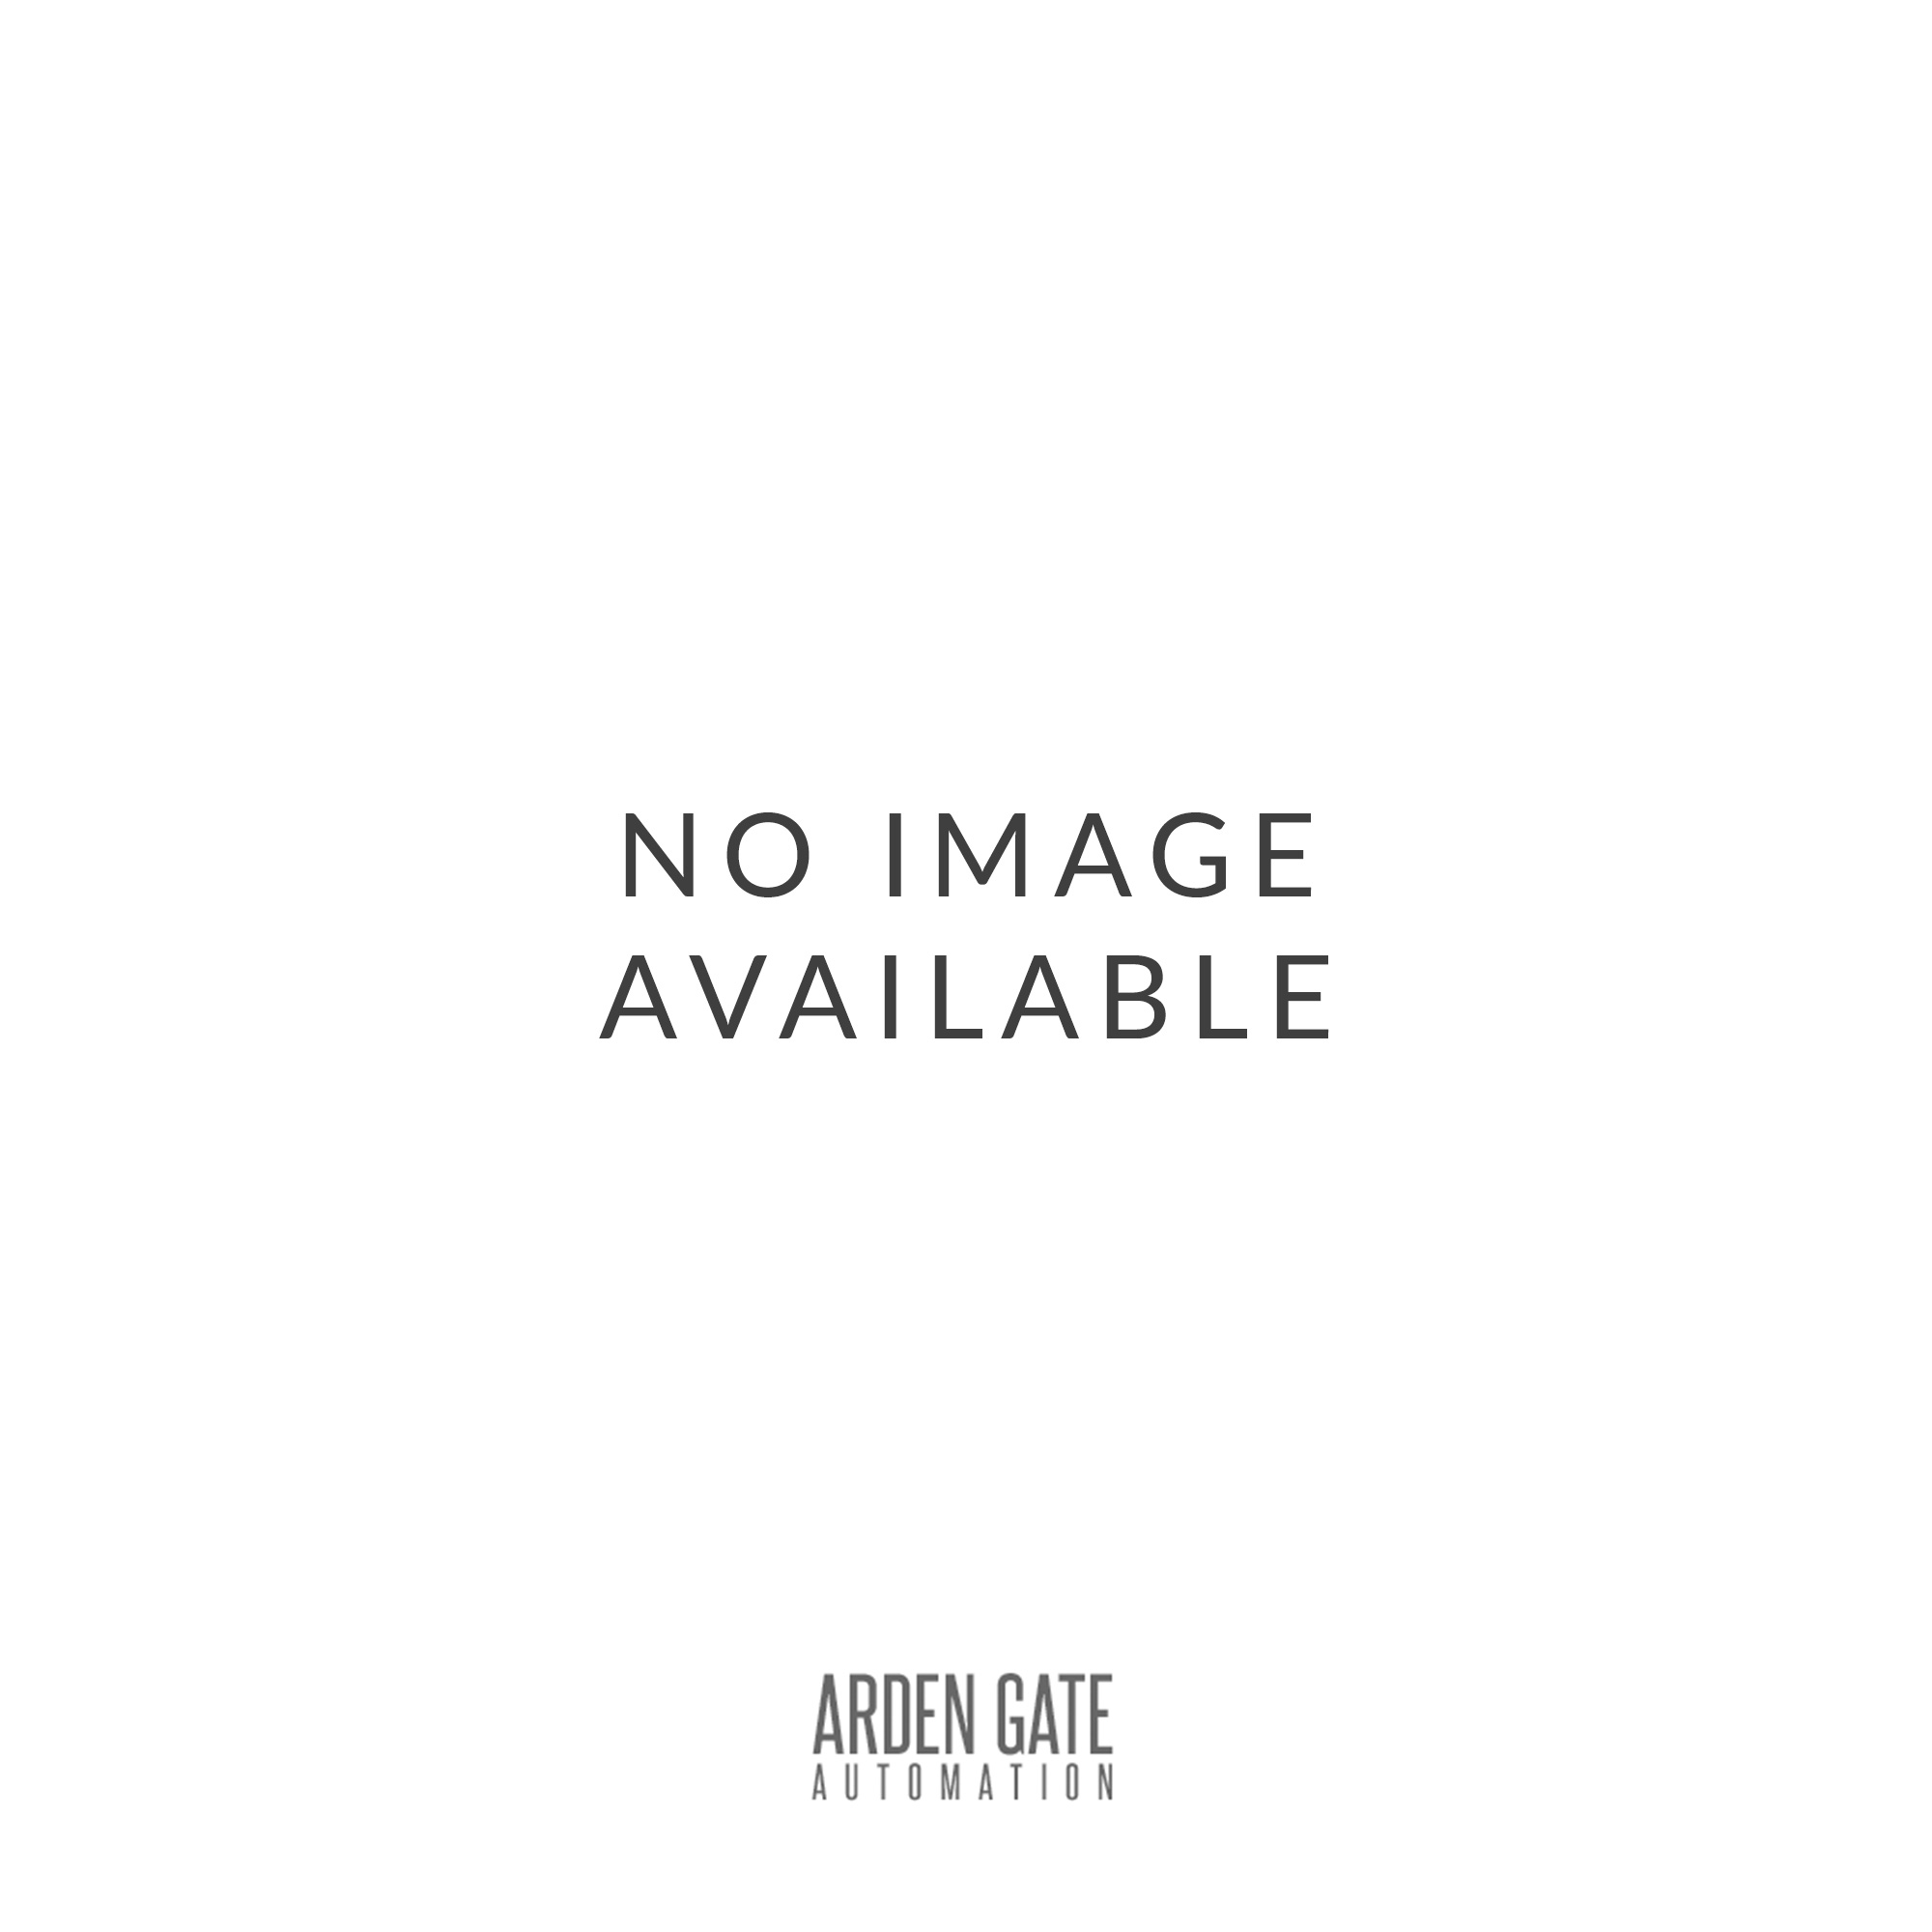 STING/24NET KIT Automation for Swing Gates